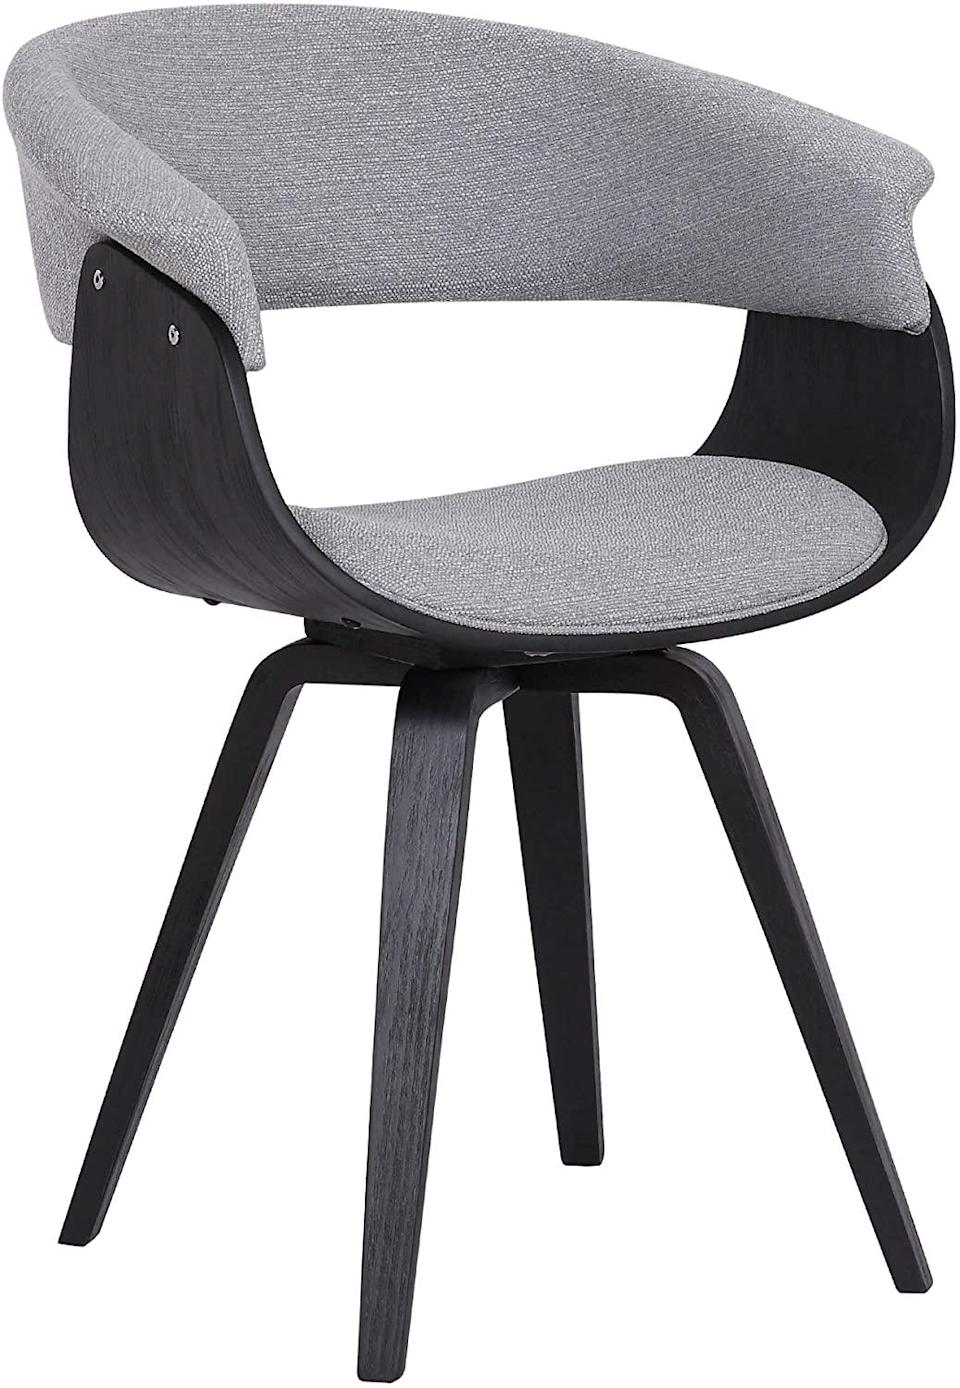 "<h2>Armen Living Summer Dining Chair</h2> <br><strong>Best For: Secret Desk Chair</strong><br>Wanna hear a secret? This ""dining chair"" is actually a rookie desk chair — built with a hidden swivel capability and sturdy bucket-seat design that is ready to support your WFH booty in MCM-style. <br><br><strong>The Hype: </strong>4.4 out of 5 stars and 383 reviews on <a href=""https://amzn.to/2z4Fd9y"" rel=""nofollow noopener"" target=""_blank"" data-ylk=""slk:Amazon"" class=""link rapid-noclick-resp"">Amazon</a><br><br><strong>Comfy Butts Say:</strong> ""This chair hit all the points for what I was looking for in setting up my office in this quarantine/work-from-home world: 1) it is stylish, 2) it arrived quickly, 3) it was so quick to put together, 4) it didn't break the bank, and 5) it's comfy and I have somewhere to rest my arms. Overall, I highly recommend especially if you find yourself creating an at-home office on a whim/budget.""<br><br><strong>Armen Living</strong> Summer Dining Chair, Gray, $, available at <a href=""https://amzn.to/3e5v7nY"" rel=""nofollow noopener"" target=""_blank"" data-ylk=""slk:Amazon"" class=""link rapid-noclick-resp"">Amazon</a><br><br><br><br><br><br>"